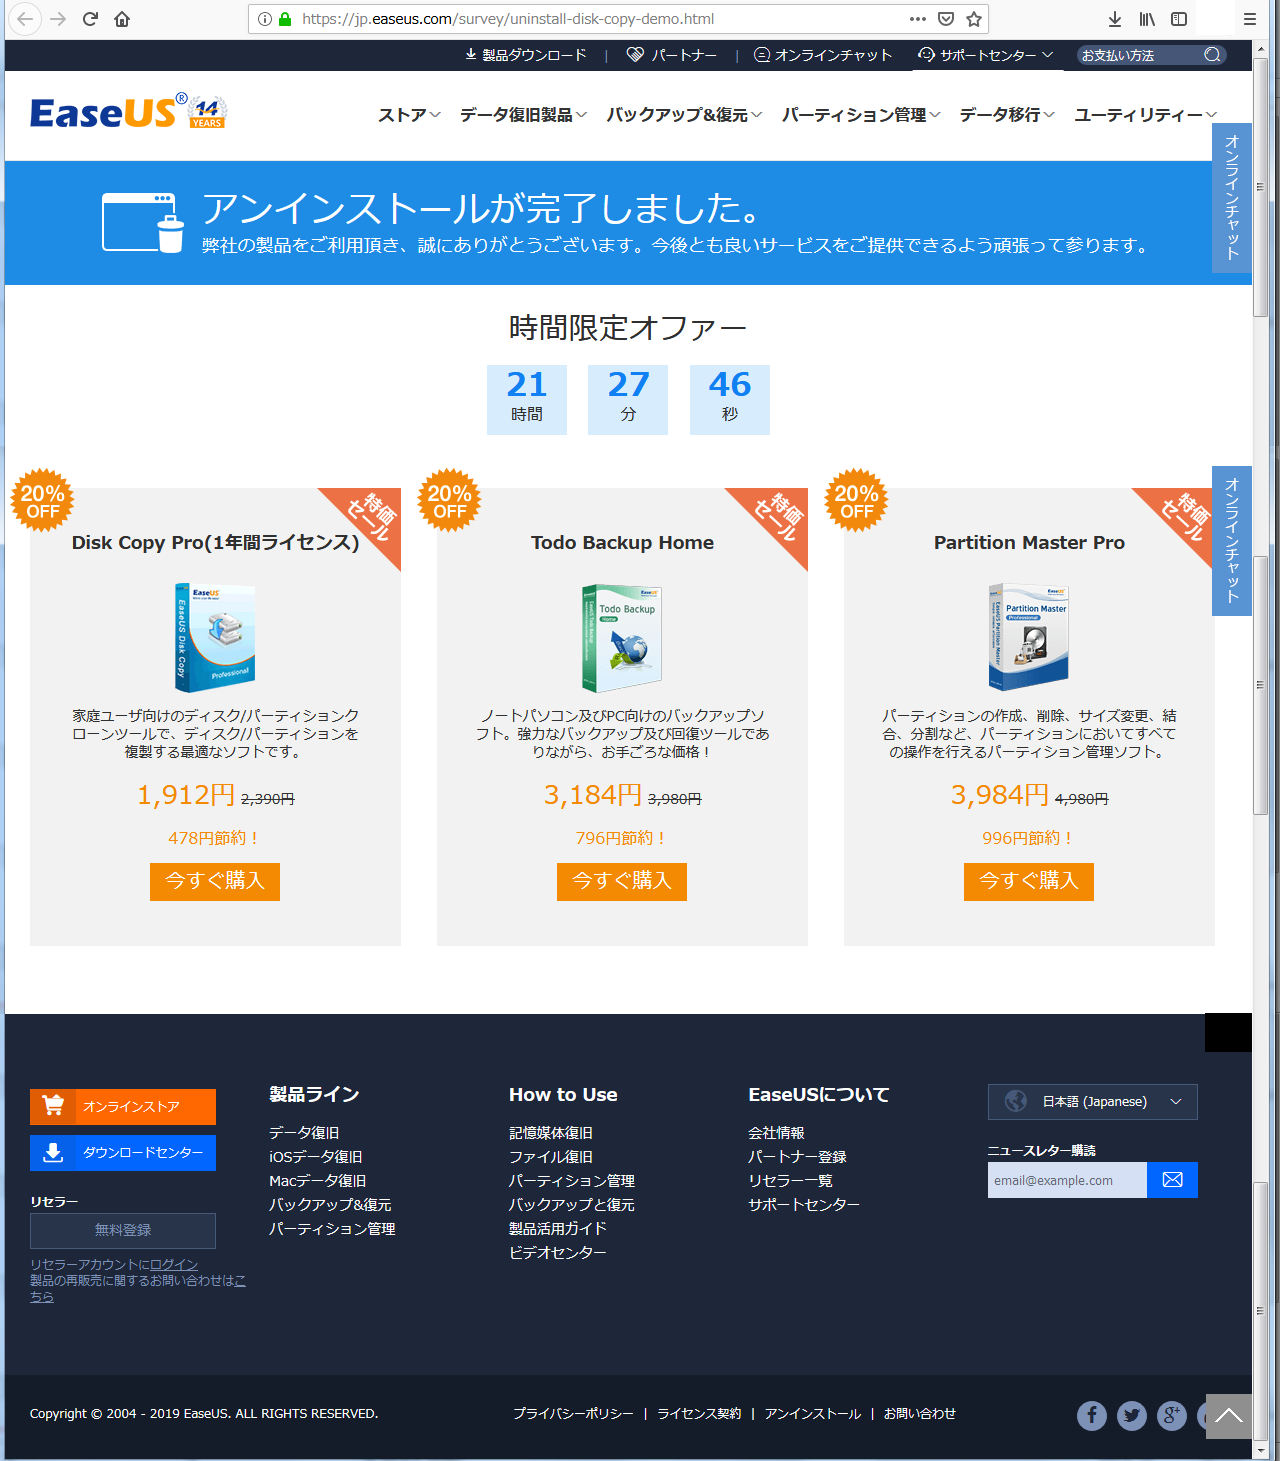 EaseUS Disk Copy Pro 3.0 アンインストール後表示されるページ.png